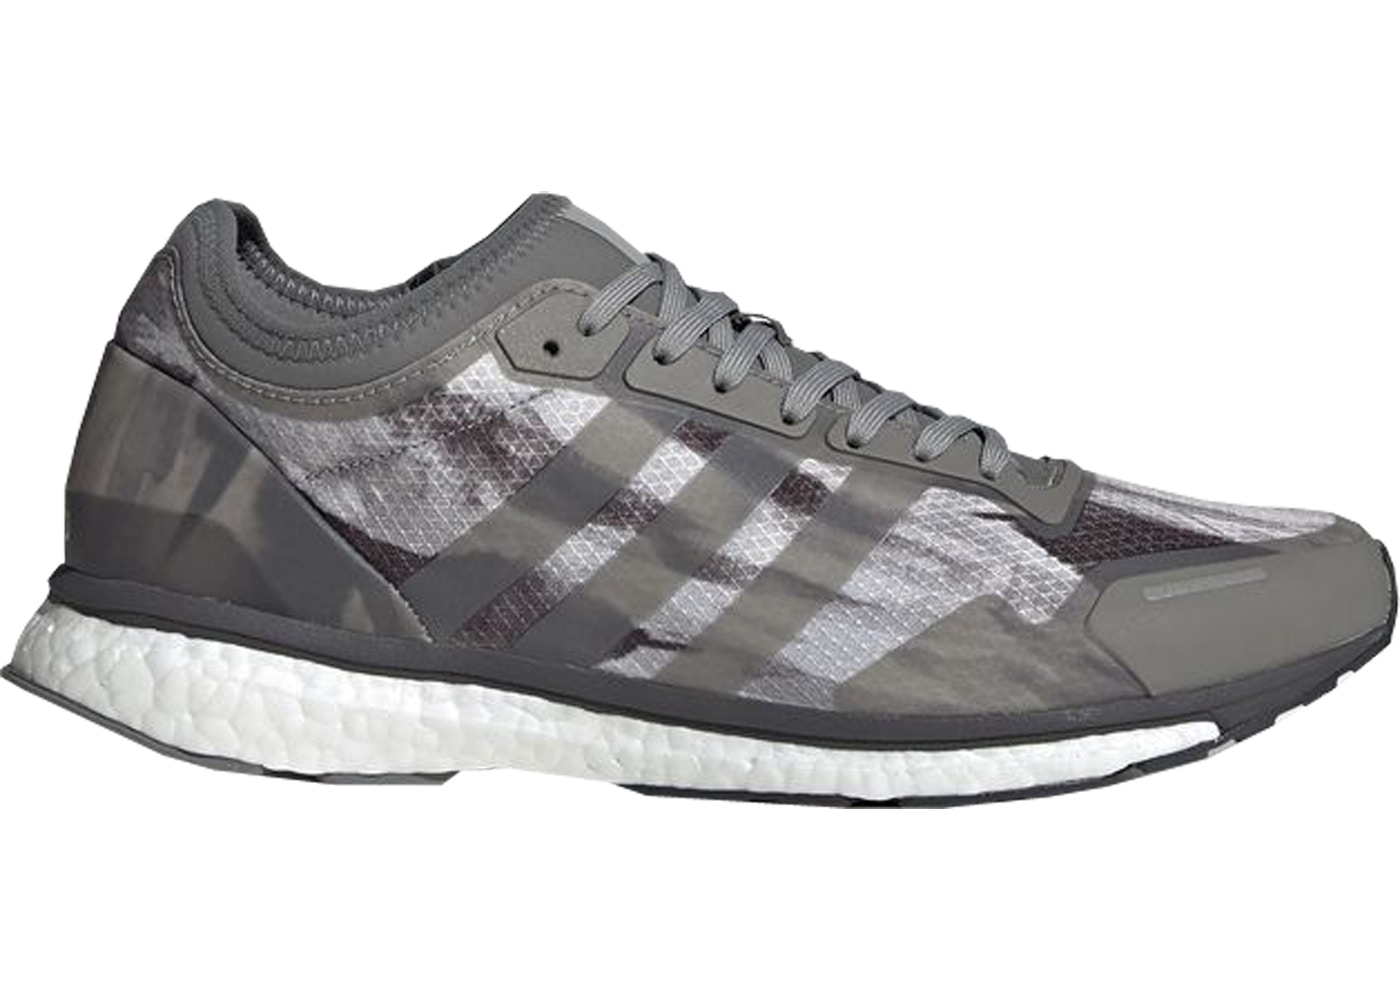 competitive price 14af7 06104 adidas adiZero Adios 3 Undefeated Performance Running